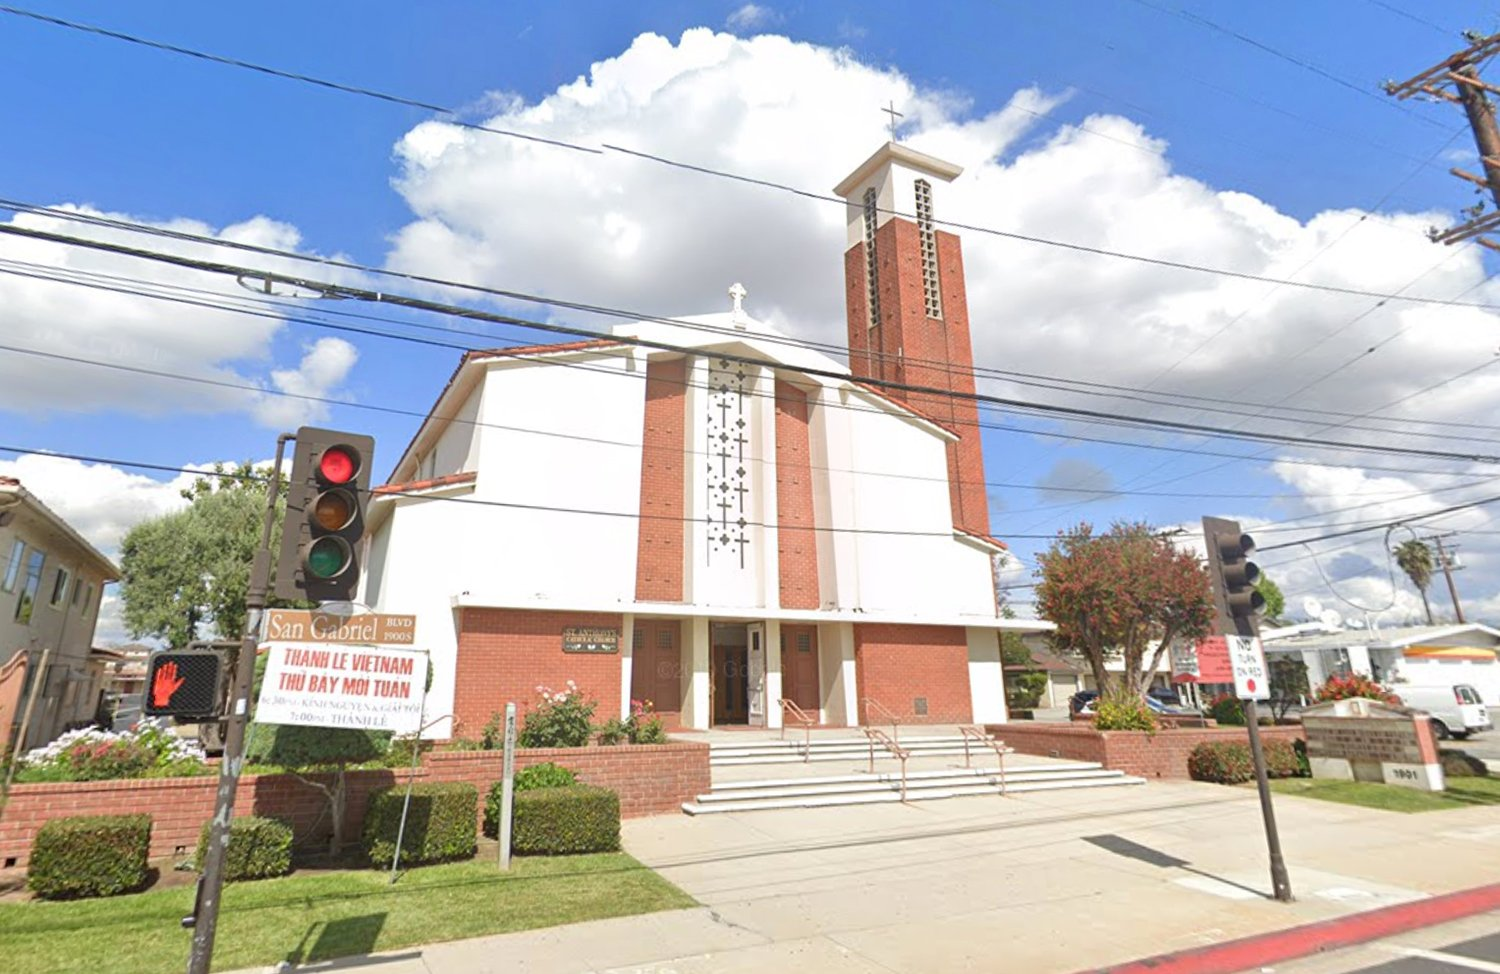 St. Anthony Catholic Church in the city of San Gabriel in Los Angeles County. Photo courtesy Google Maps